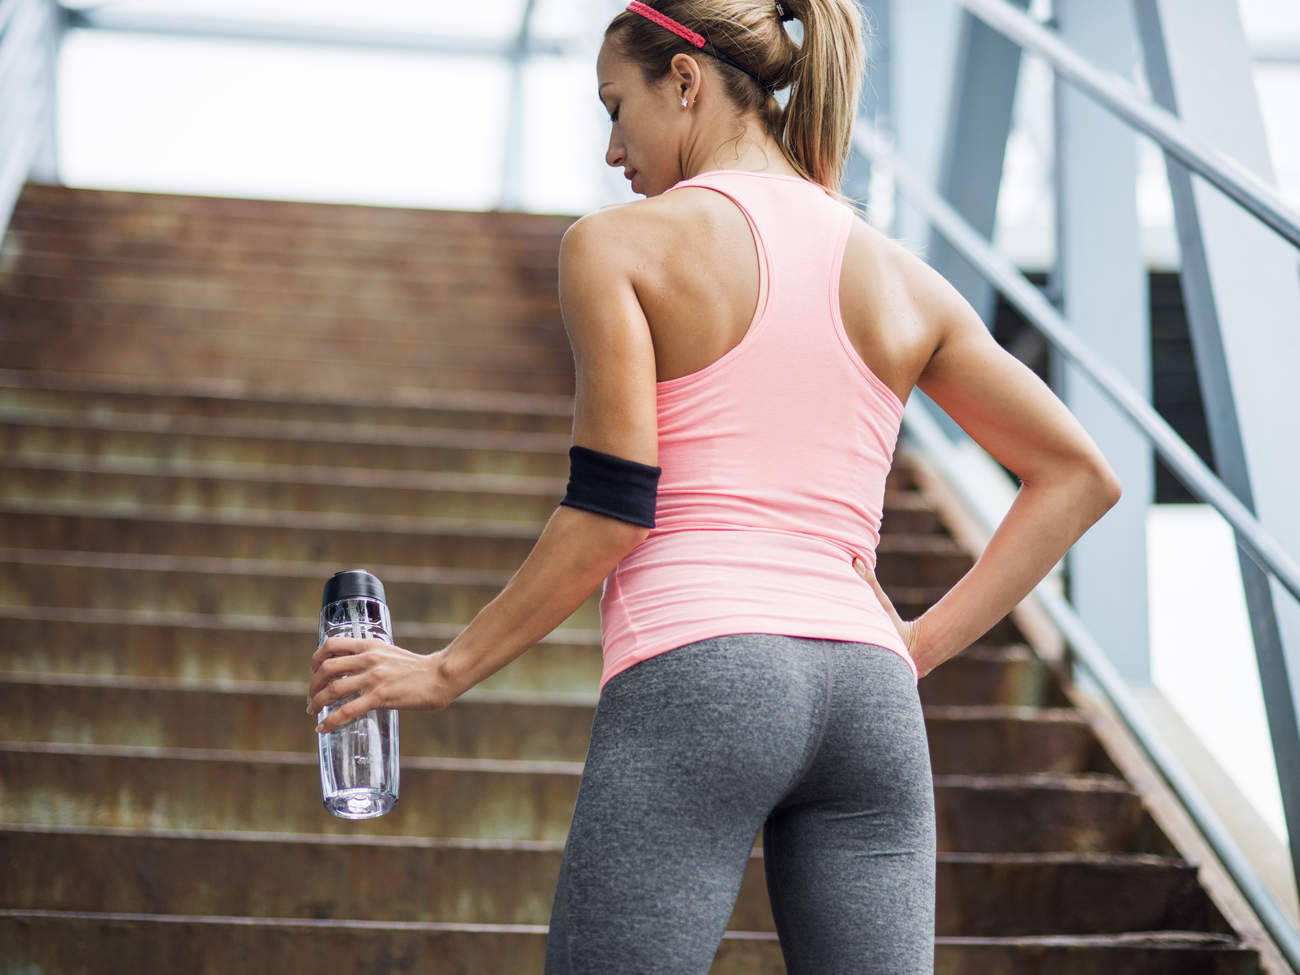 stair-workout-exercise